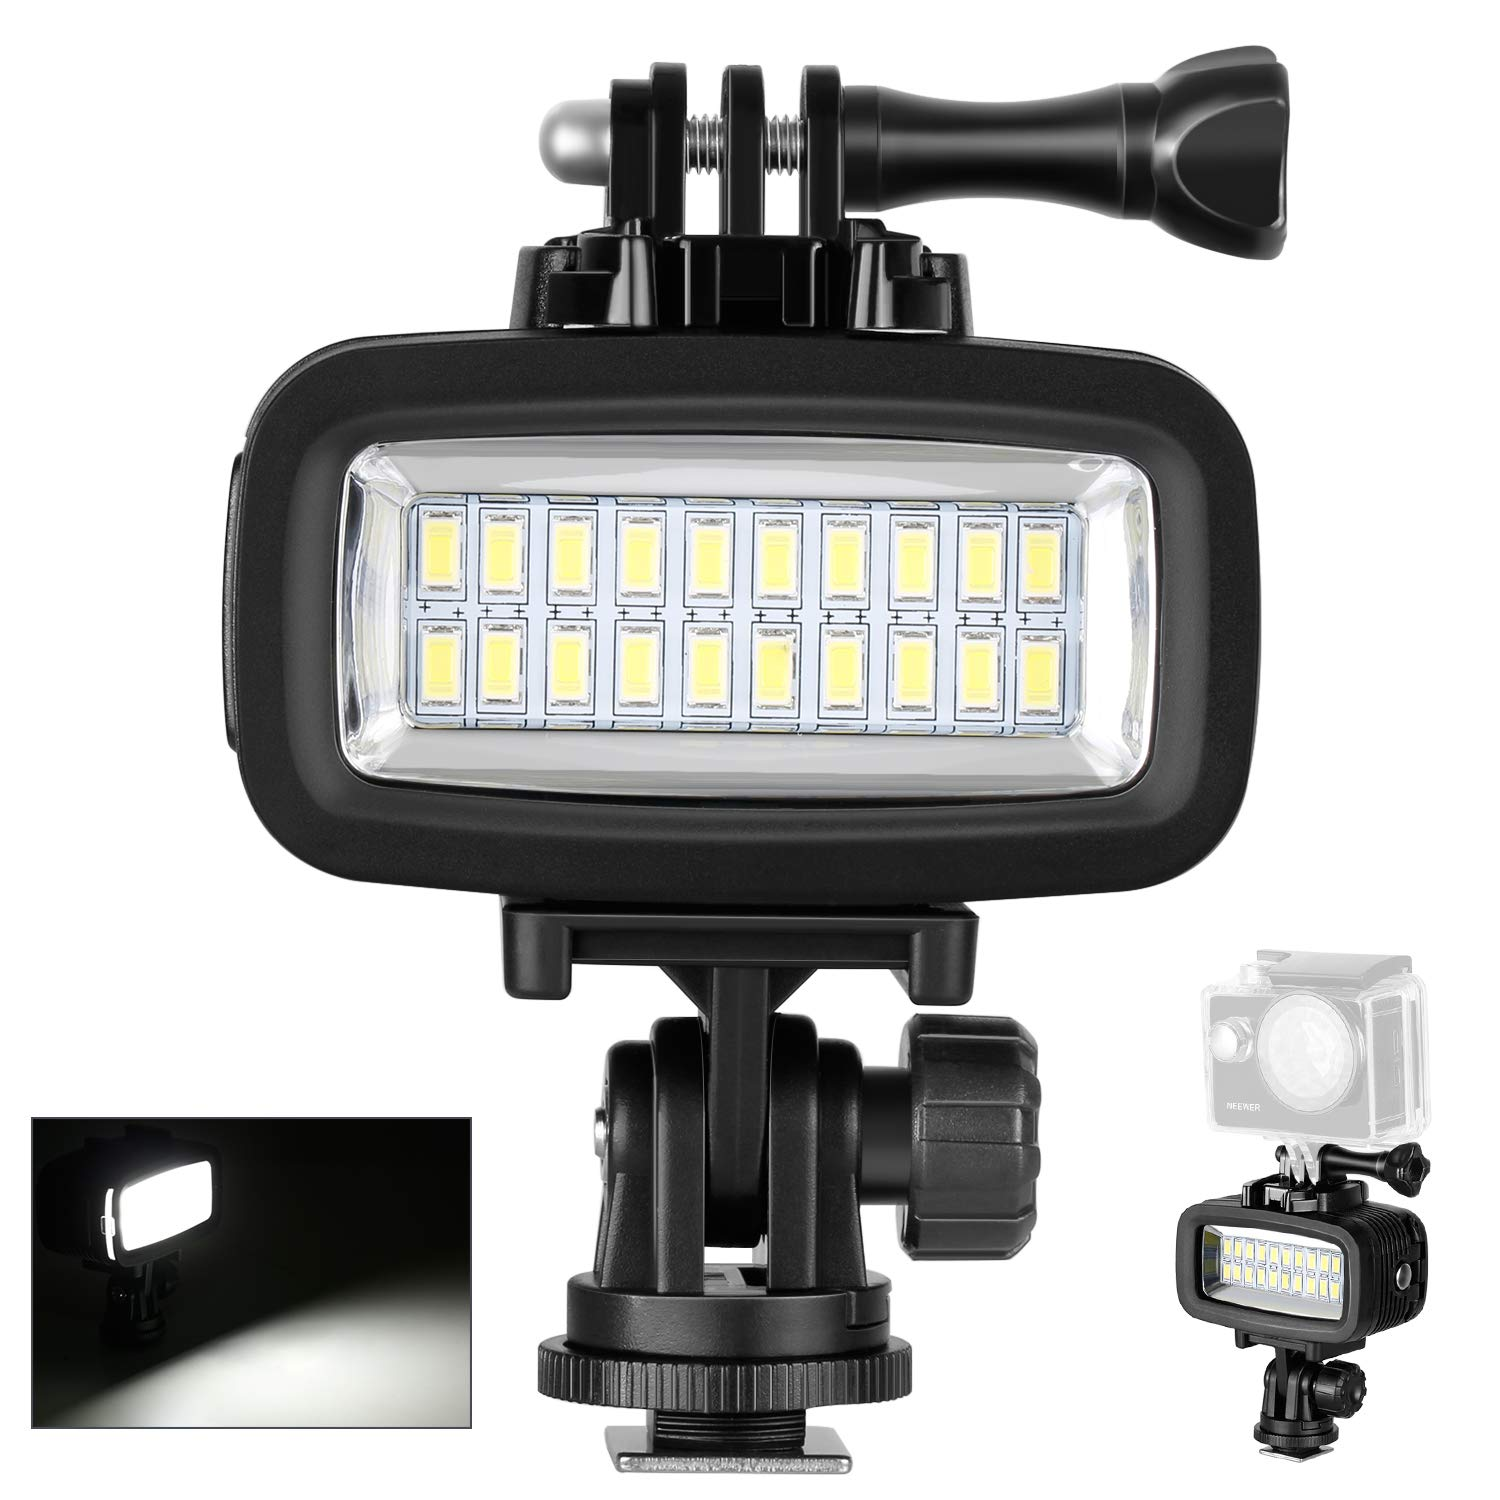 Neewer® Waterproof Up to 131ft/40m Underwater 20 LED 700LM Flash Dimmable Fill Night Light with 3 Color Filter(White, Orange, Purple) for gopro 7 GoPro Hero 4 3+? Action Camera and all DSLR Cameras 10087398